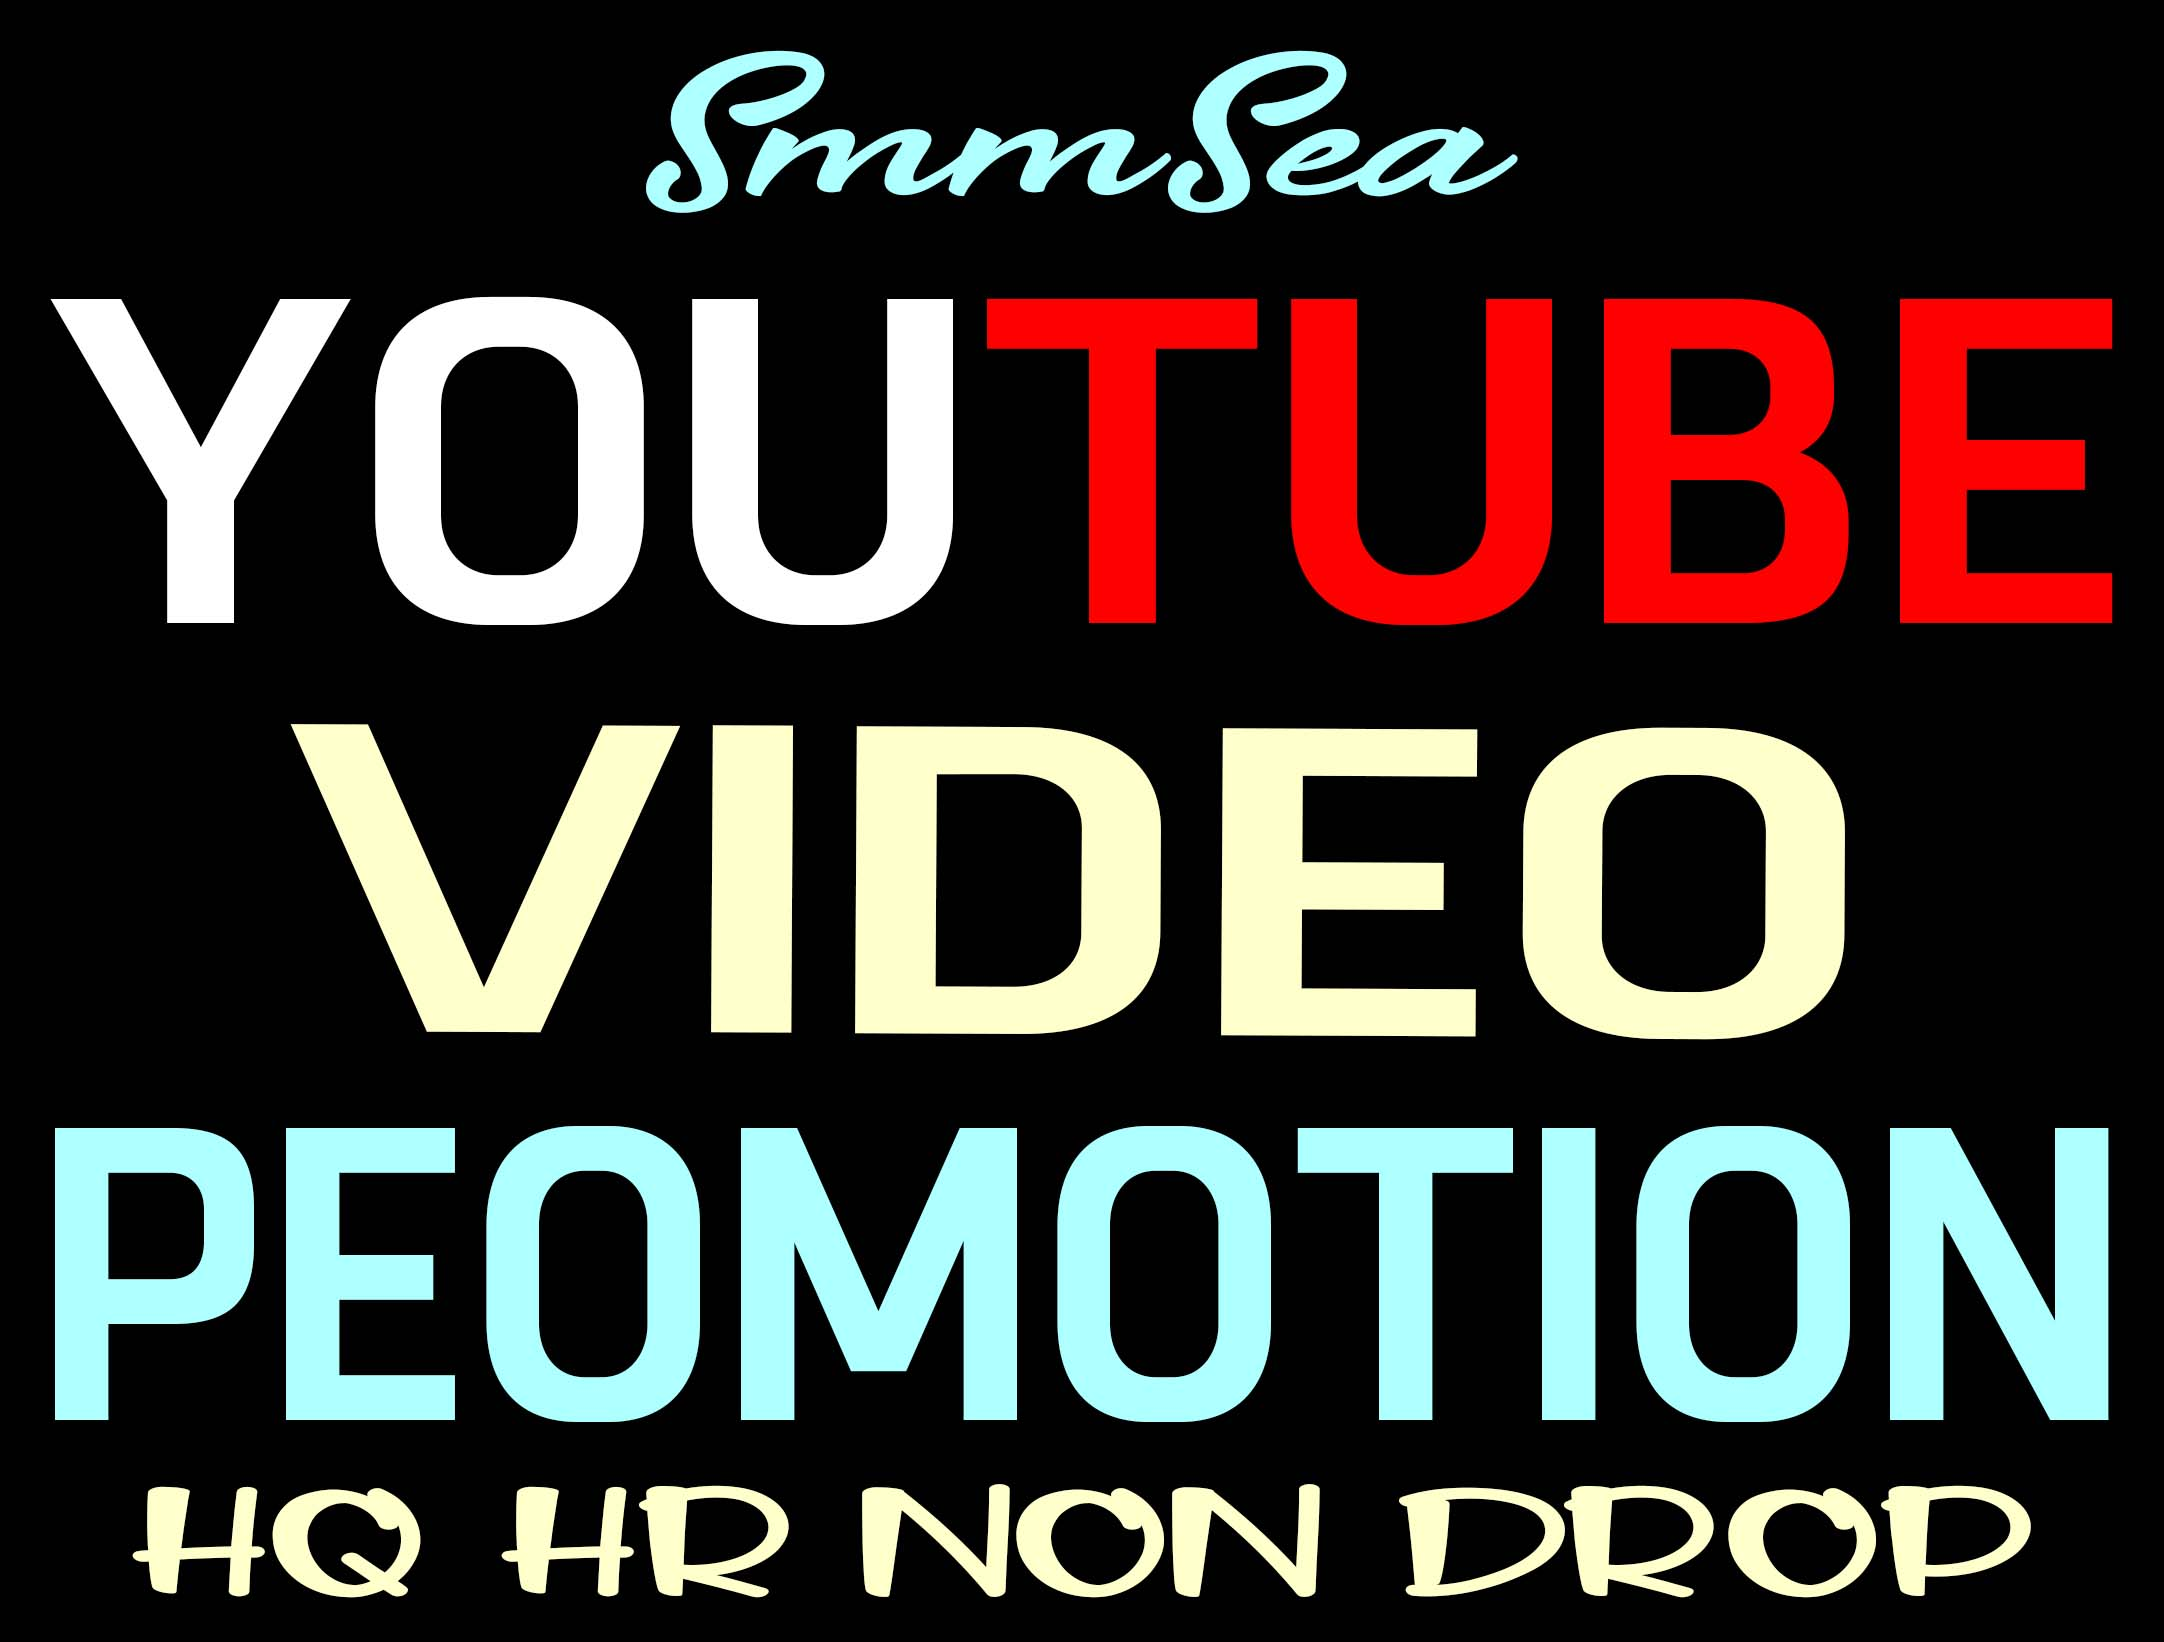 YOUTUBE VIDEO PROMOTION NON DROP & INSTANT HIGH QUALITY